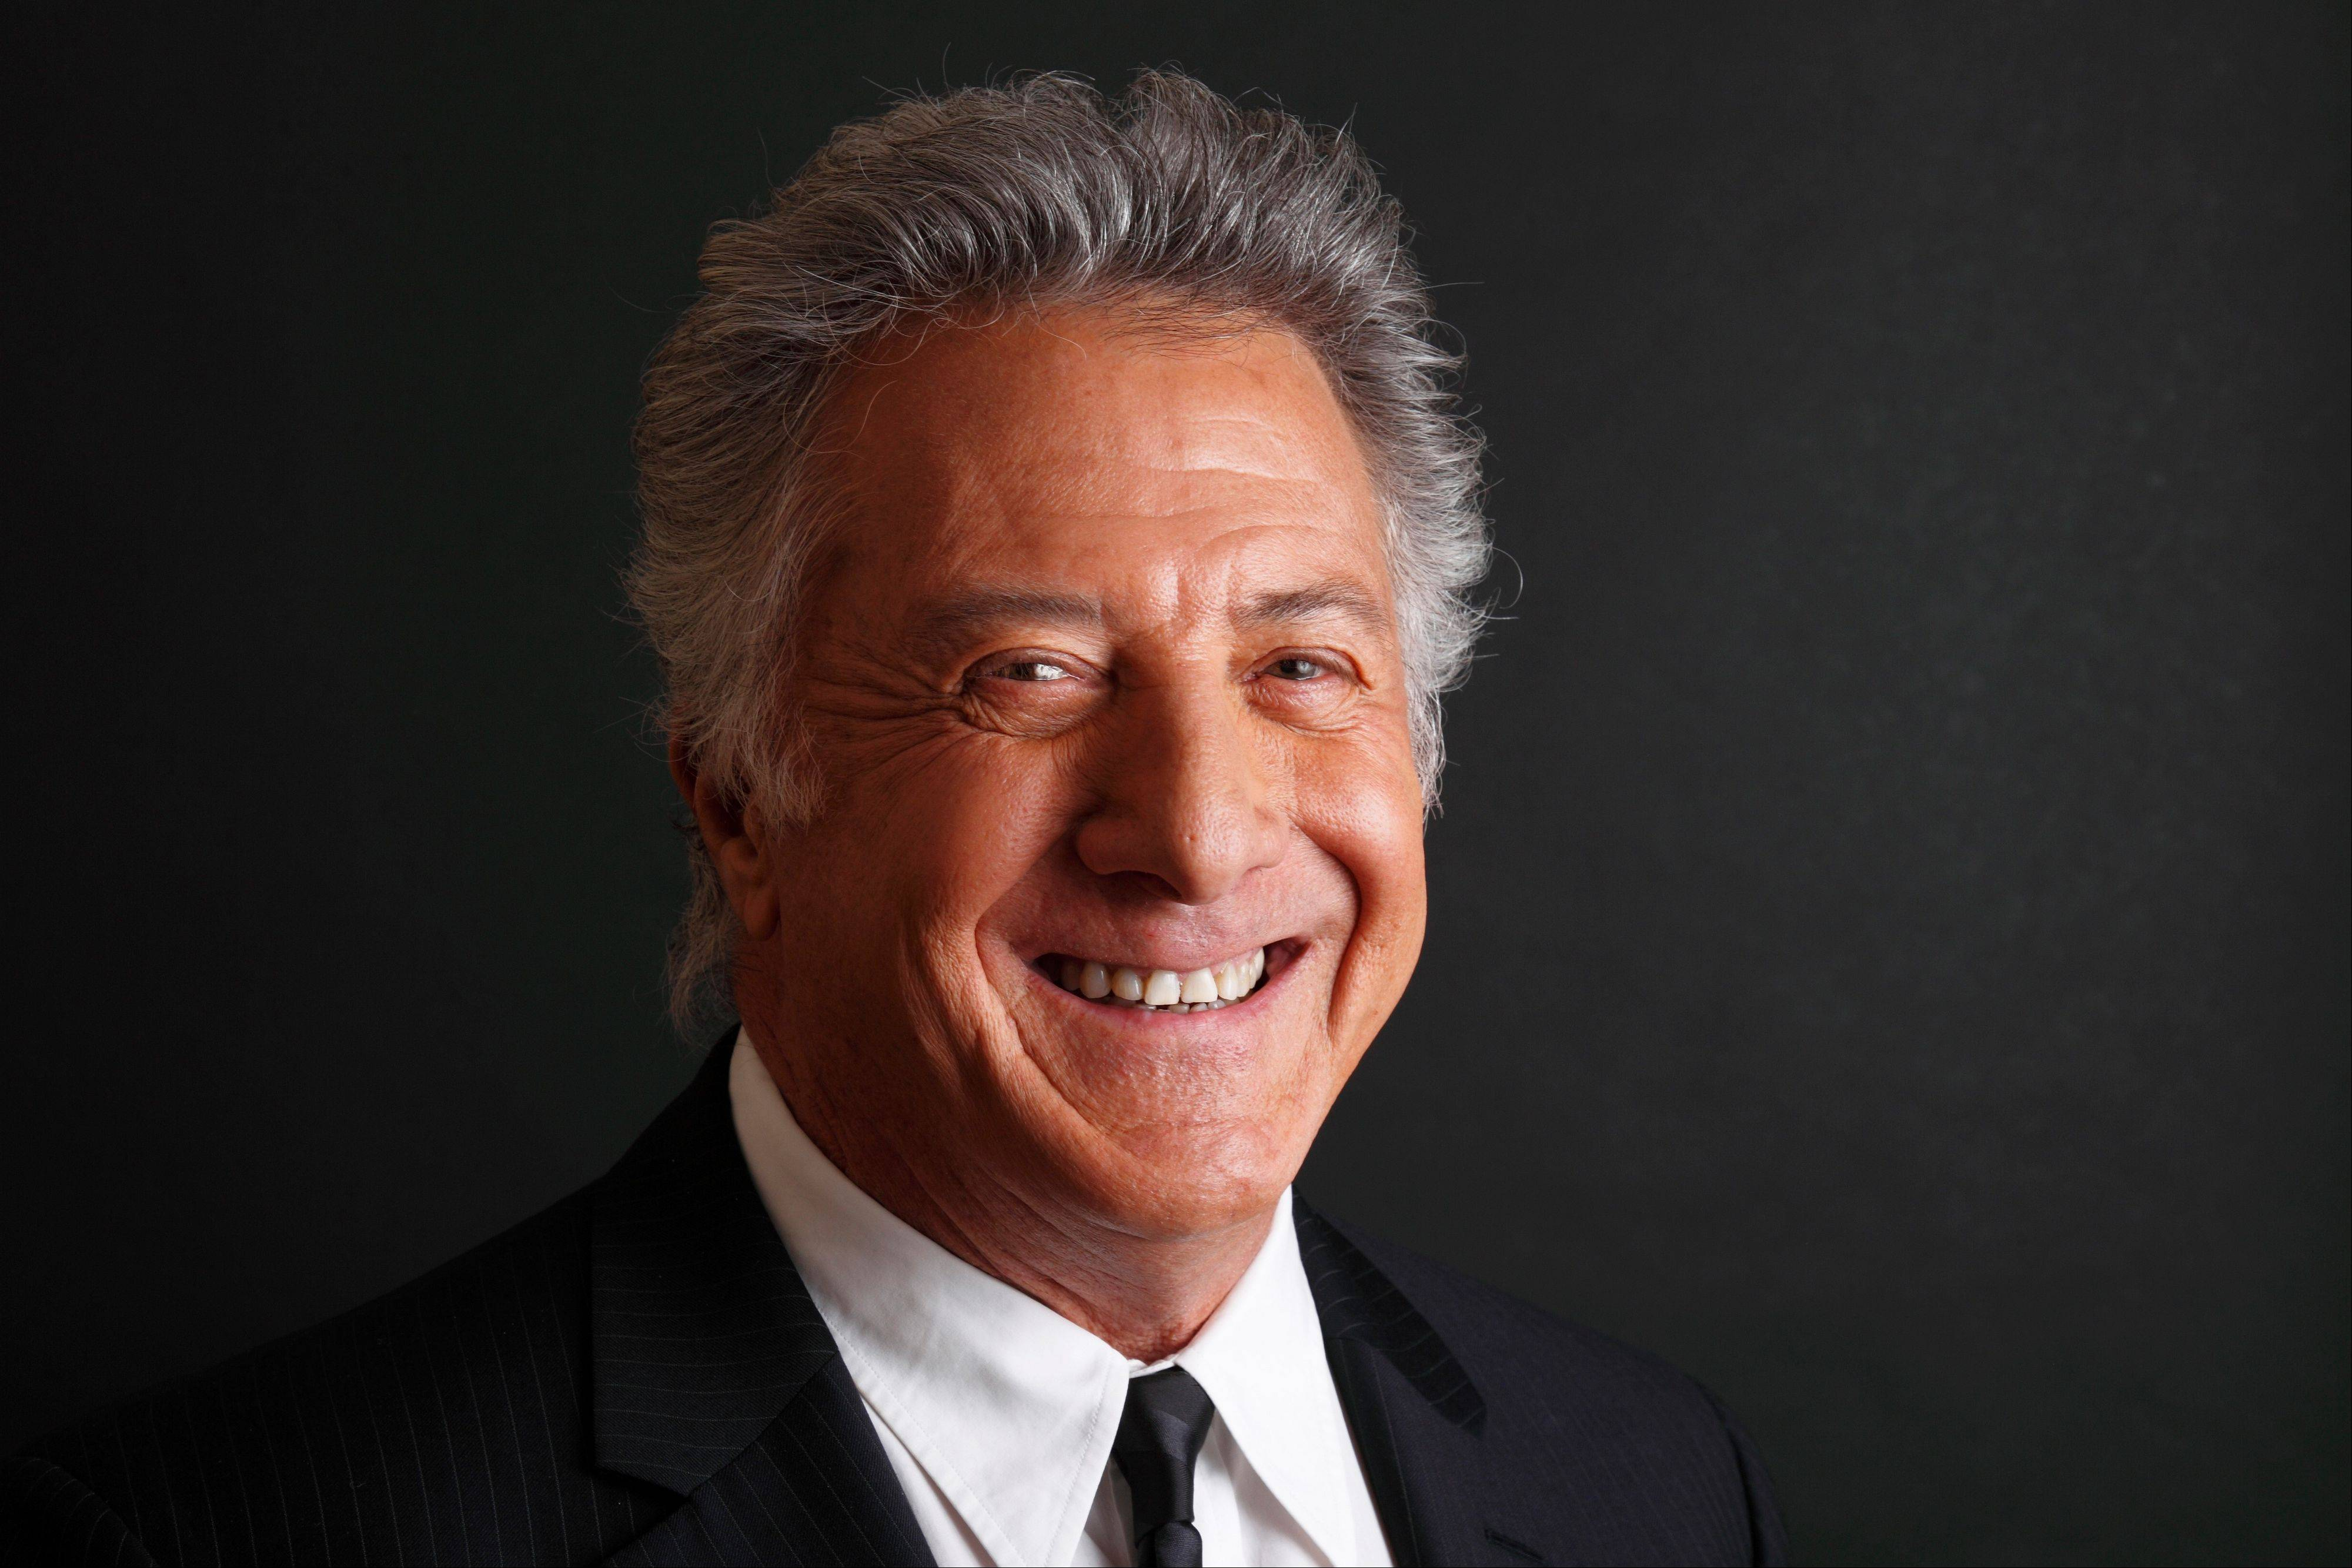 Actor Dustin Hoffman and David Letterman are among seven people receiving the 2012 Kennedy Center Honors. They join Chicago bluesman Buddy Guy, rock band Led Zeppelin and ballerina Natalia Makarova.